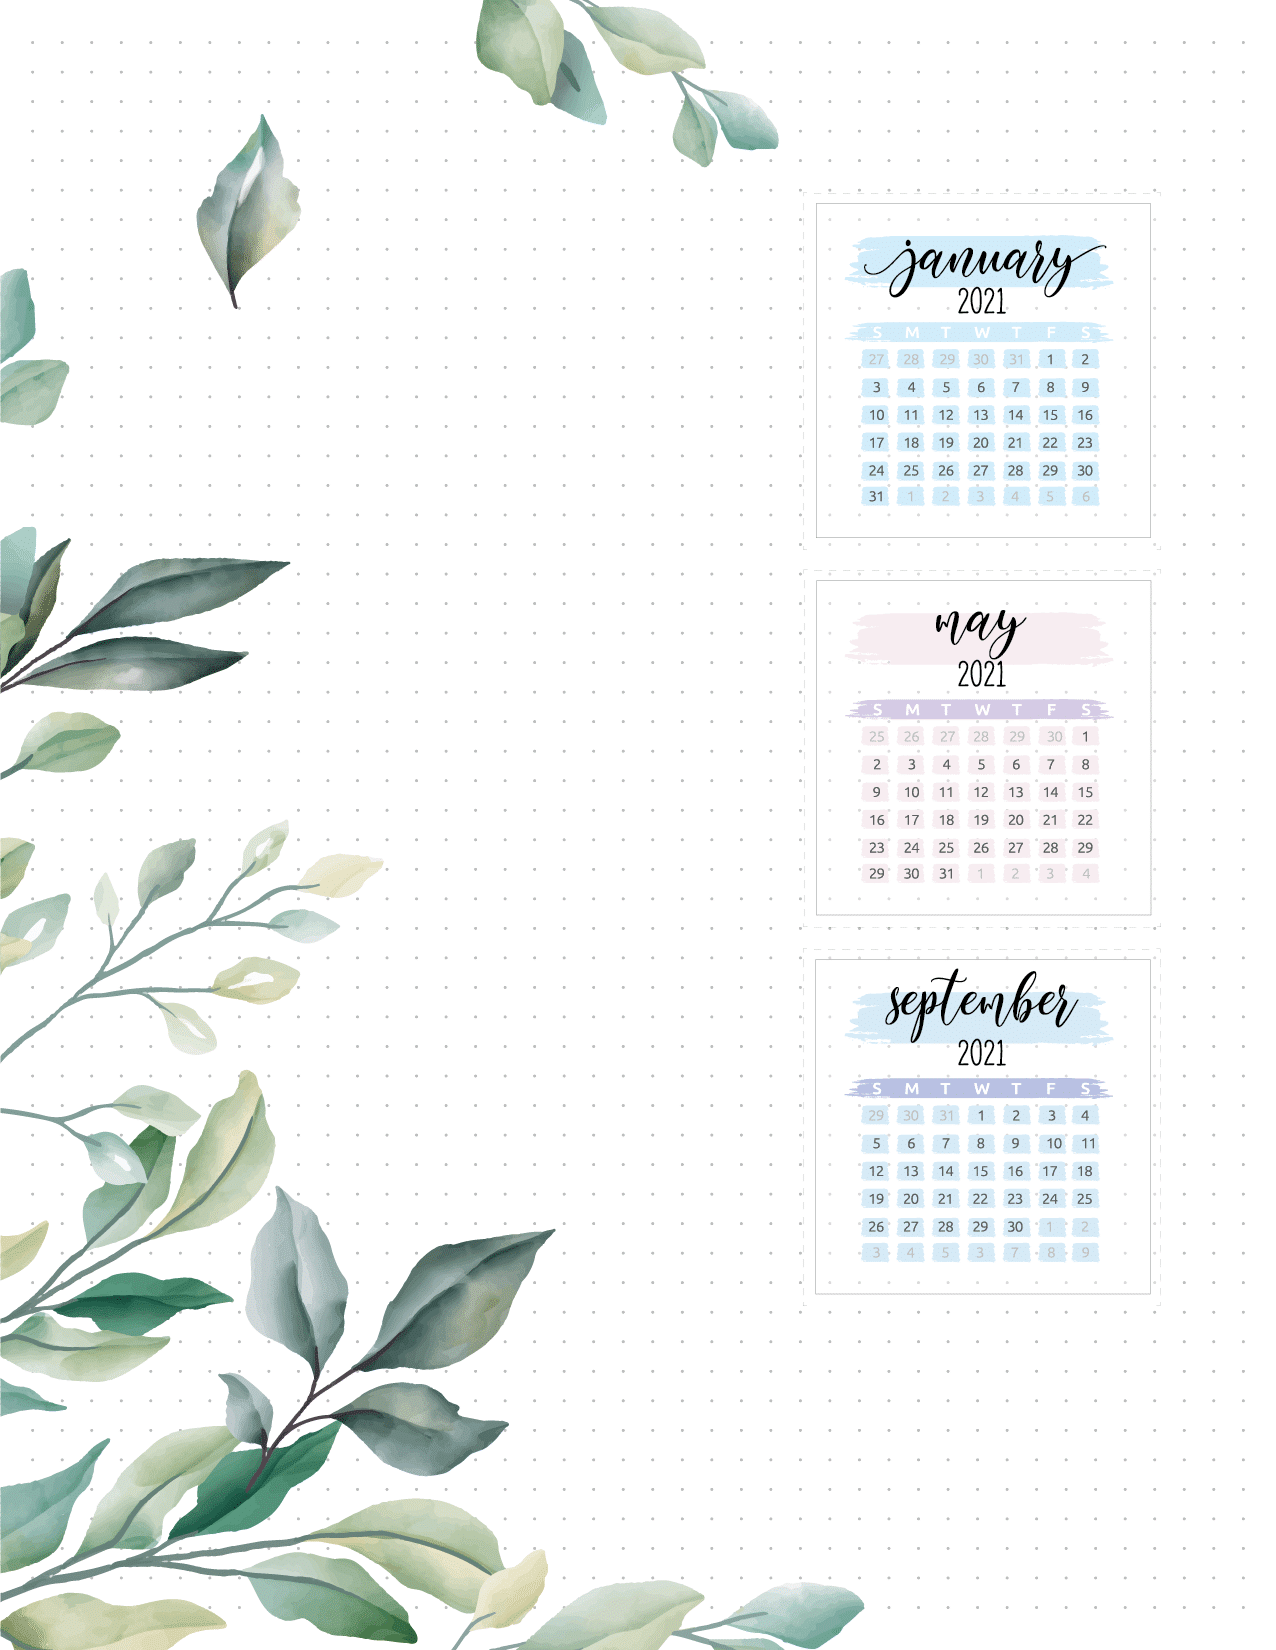 Yearly Planner Insert On Two Pages-01